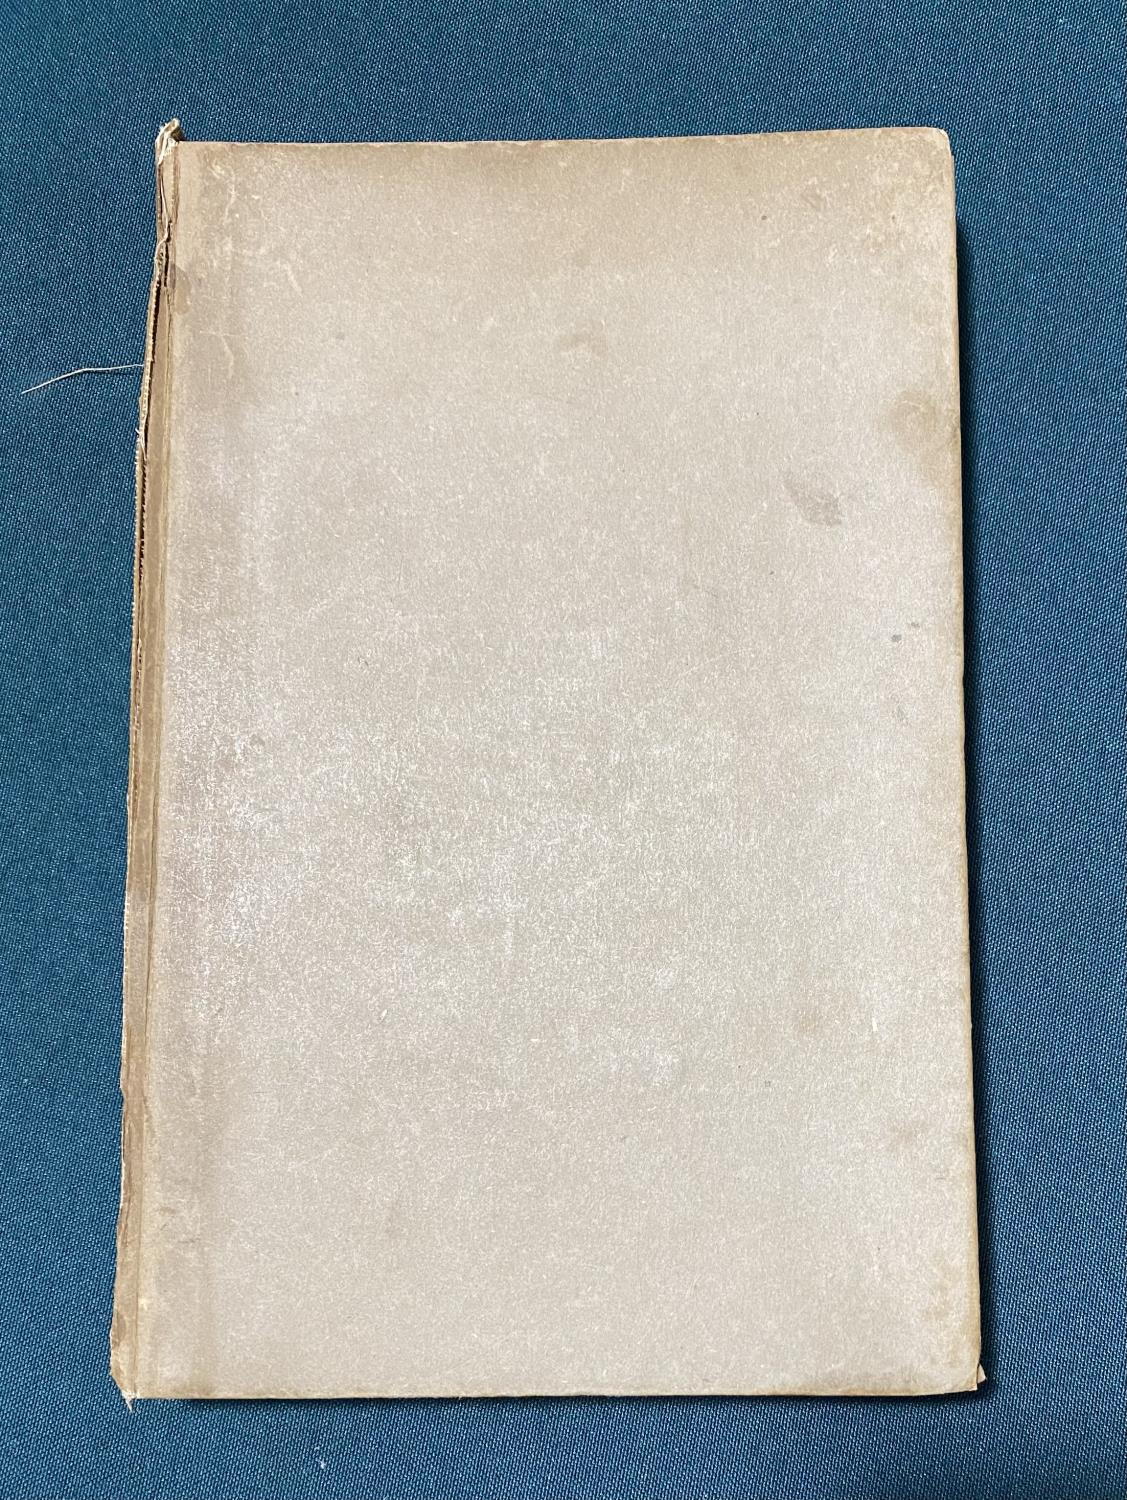 Sassoon, Siegfried. The Old Huntsman And other Poems, first English edition, inscribed on half - Image 2 of 5